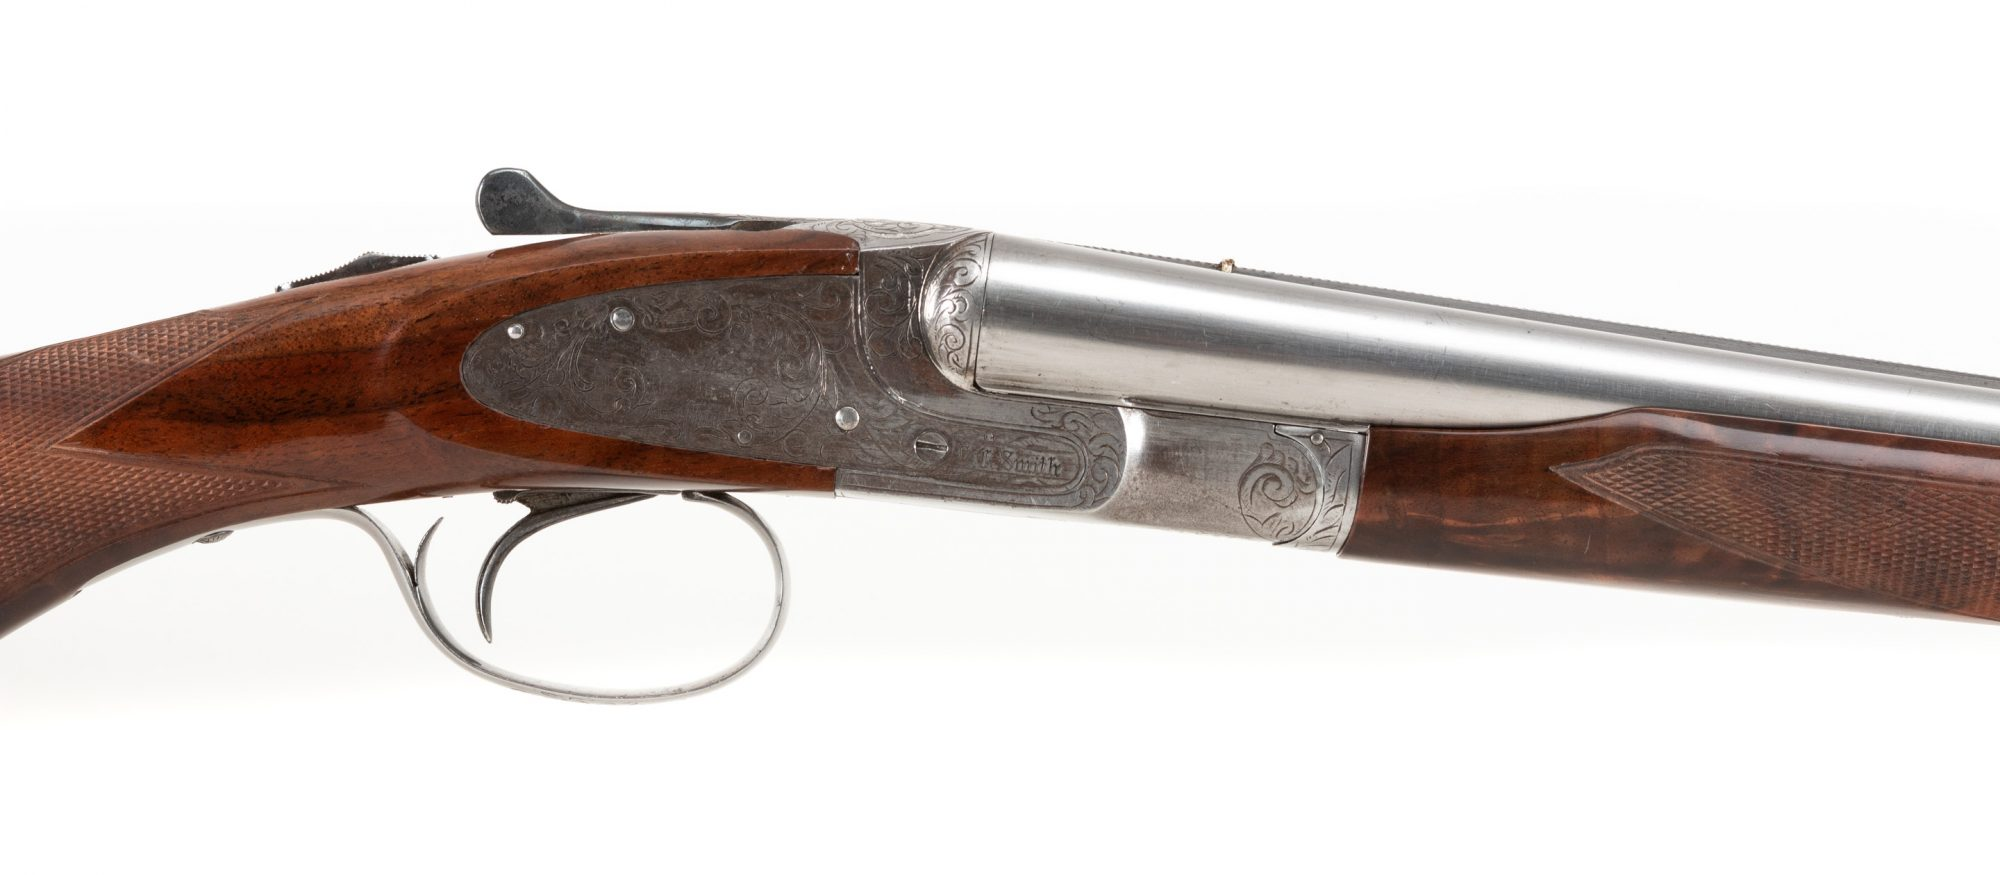 Photo of used L.C. Smith Specialty Grade 12 gauge shotgun